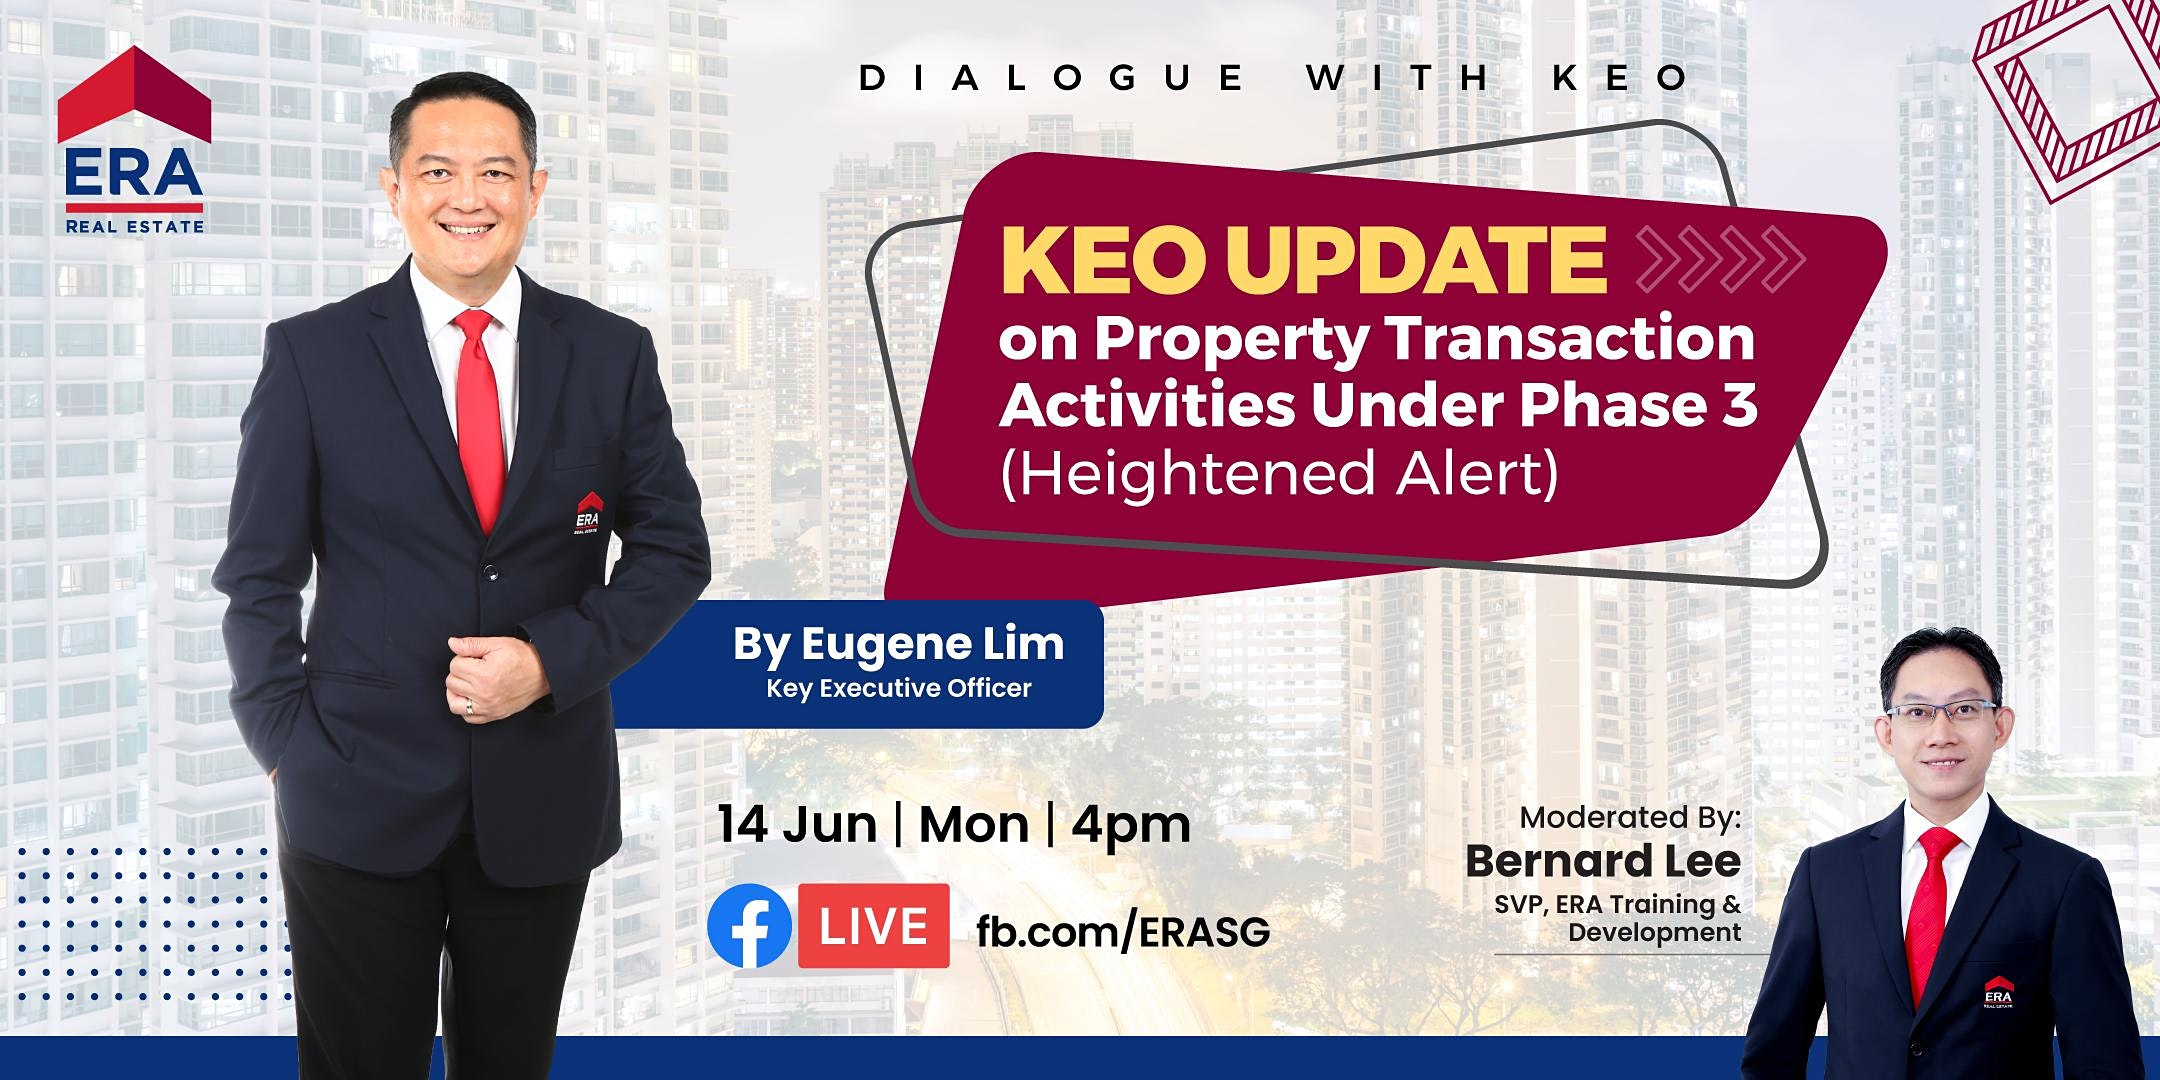 KEO Update on Property Transaction Activities Under Phase 3